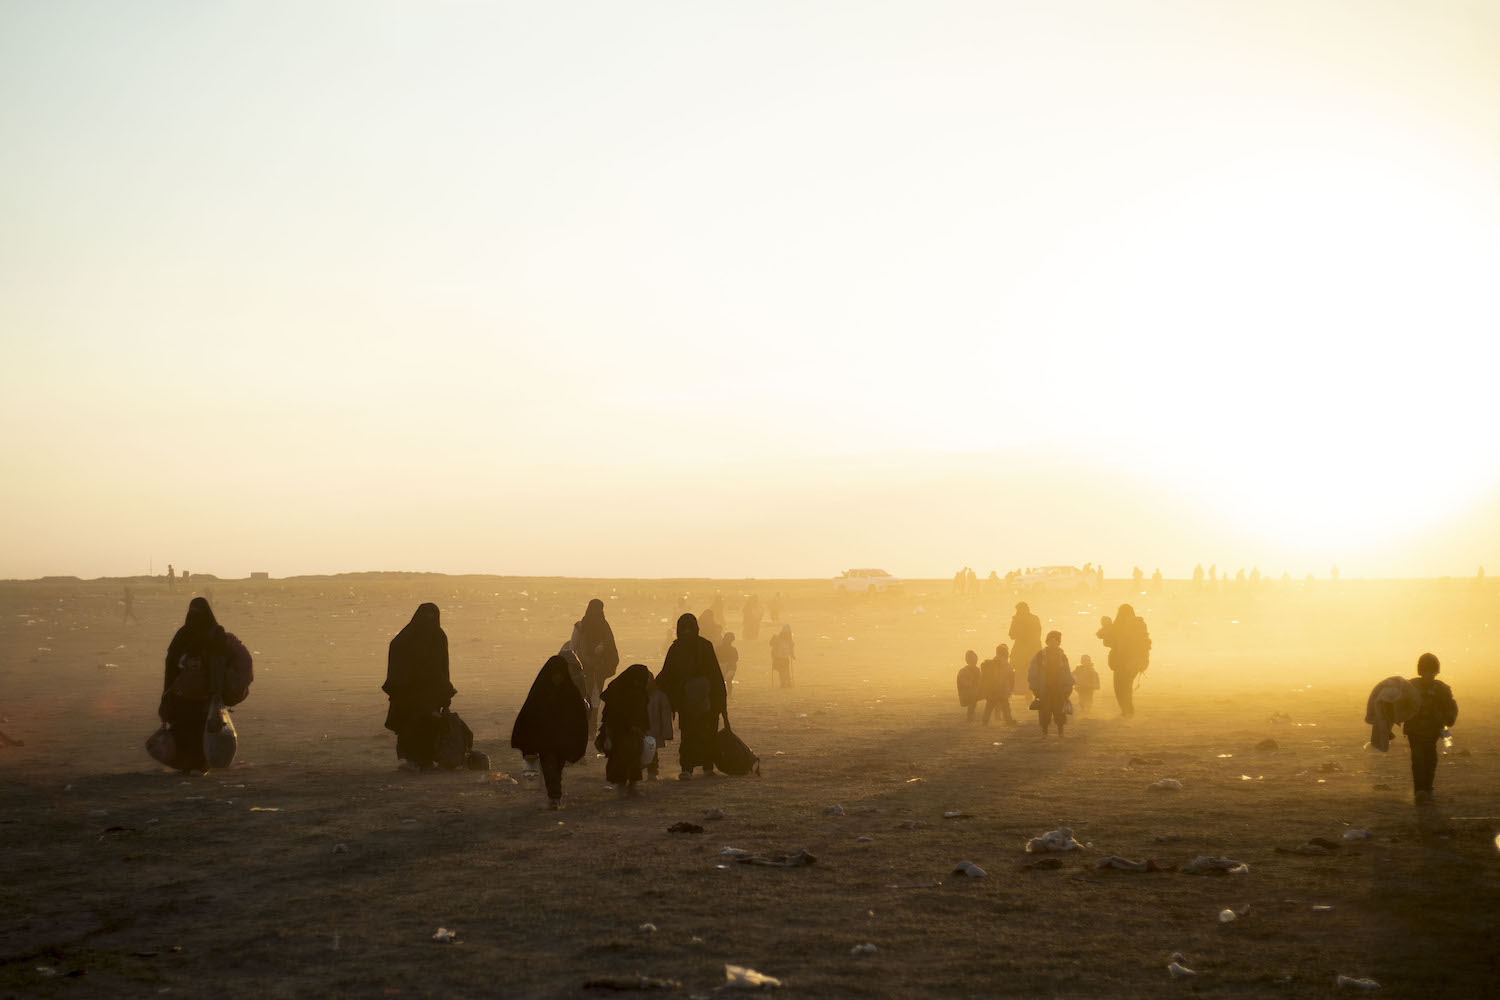 Women and children evacuated from the Islamic State's embattled holdout of Baghouz arrive at a screening area held by the U.S.-backed Kurdish-led Syrian Democratic Forces (SDF), in the eastern Syrian province of Deir Ezzor, on March 6.